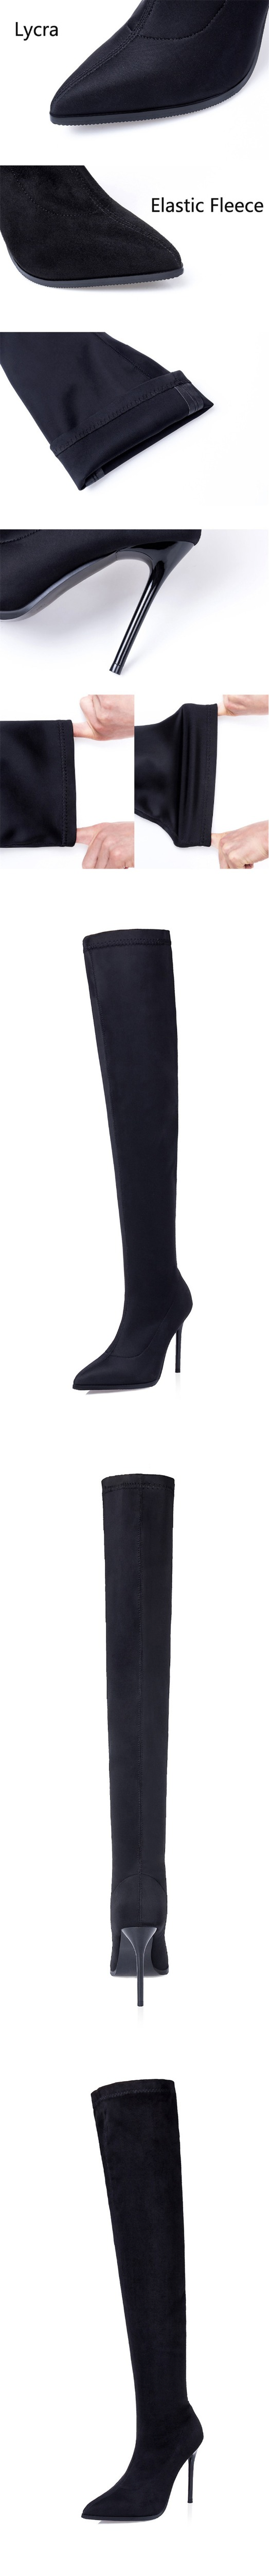 D Knight Sexy Pointed Toe Women Stiletto High Heel Over The Knee Boots Fashion Nightclub Stretch Women's Thigh High Boots Shoes (7)